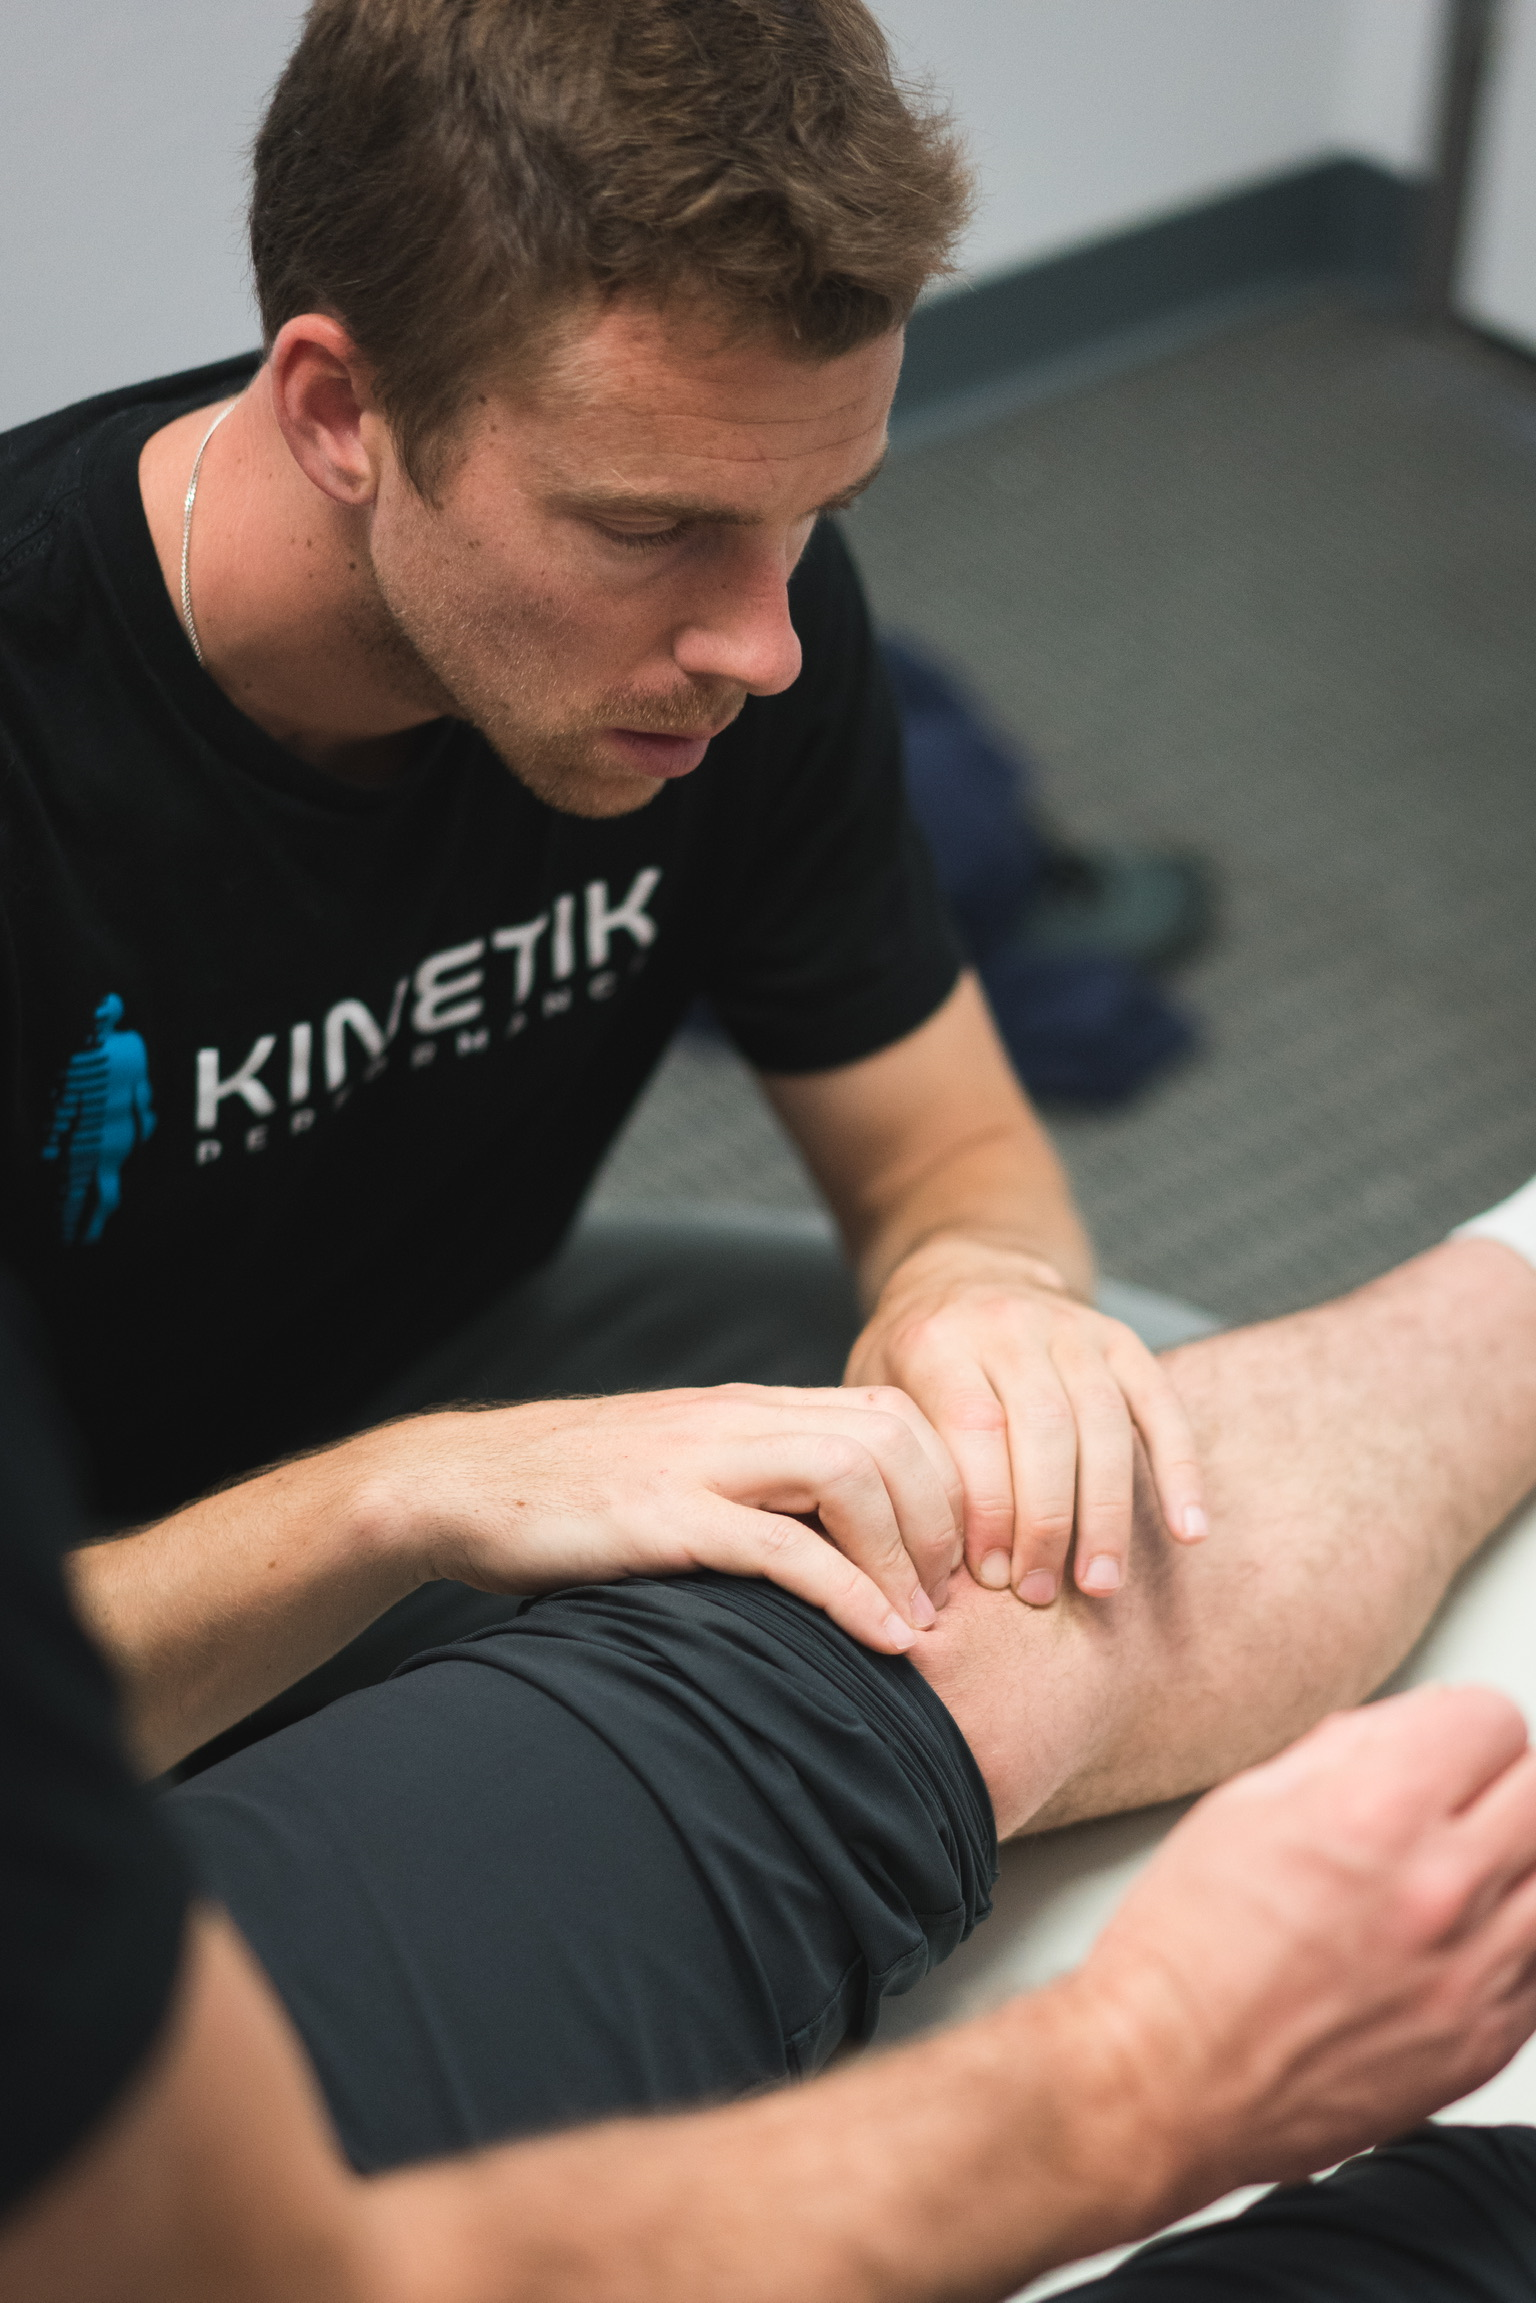 """""""After an intense week of learning, - I knew the importance of fascial planes, how muscle structures interlace with other structures, how to treat ligaments and why, what fascia is and why we talk about it so much, and how to assess underlying issues while analyzing movement patterns such as running, walking, CrossFit movements, yoga poses, cycling mechanics. You name it, we assessed it, and learned from each other what was happening mechanically or not happening mechanically. The ability to see the body globally allows Jonathan to see the root cause of issues, not just where the pain is.""""- Ciaran Lane, ART Provider"""